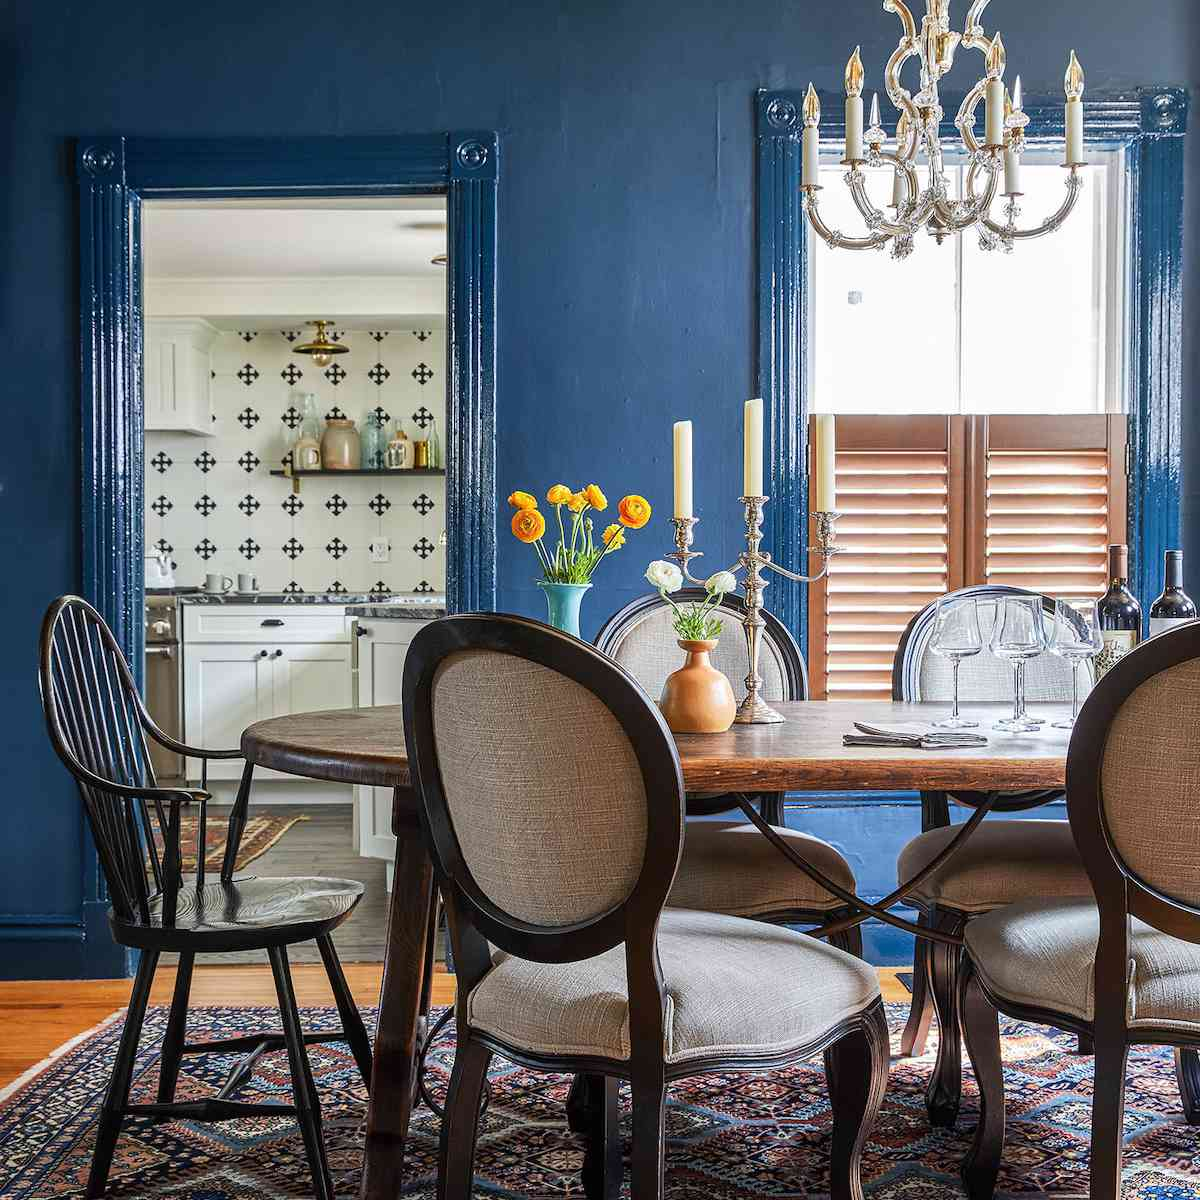 A dining room with dark blue walls and a copper statement ceiling